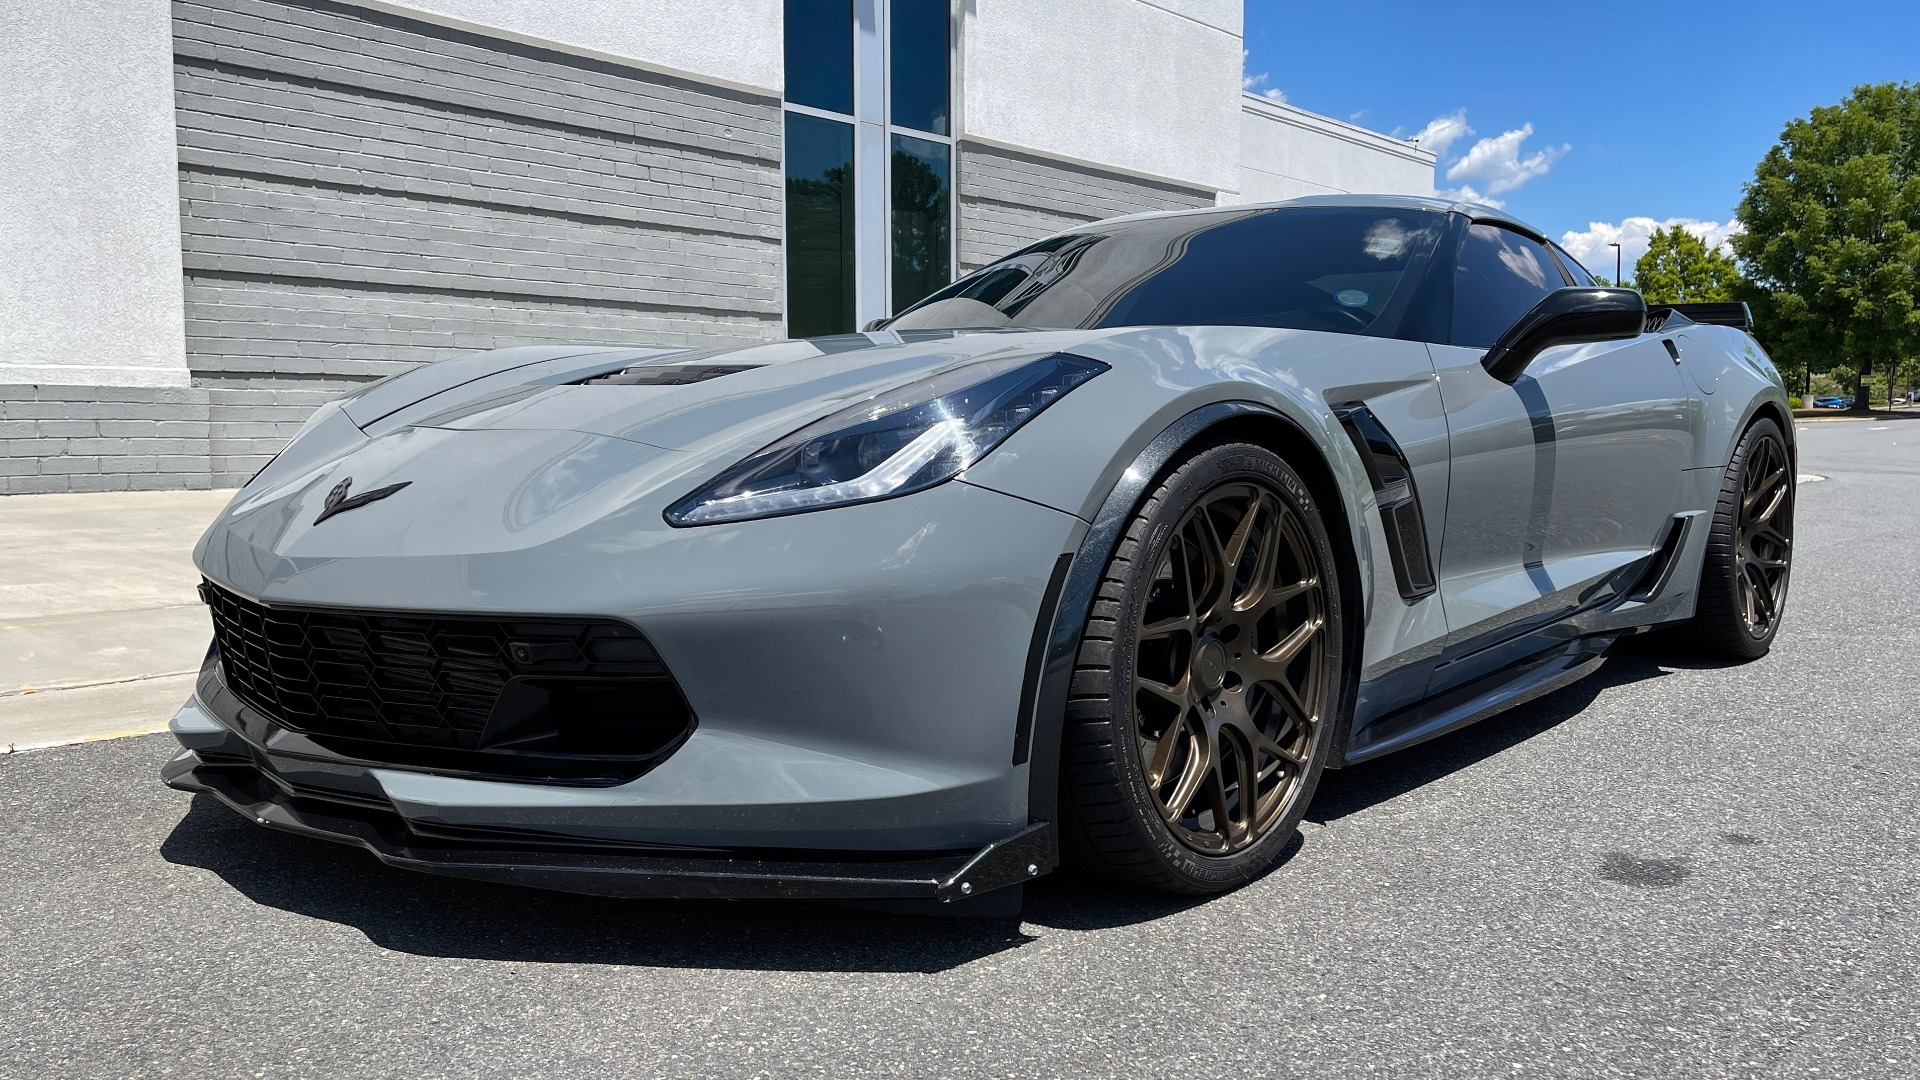 Used 2019 Chevrolet CORVETTE GRAND SPORT 3LT / SUPERCHARGED 6.2L V8 / NAV / REARVIEW for sale Sold at Formula Imports in Charlotte NC 28227 2